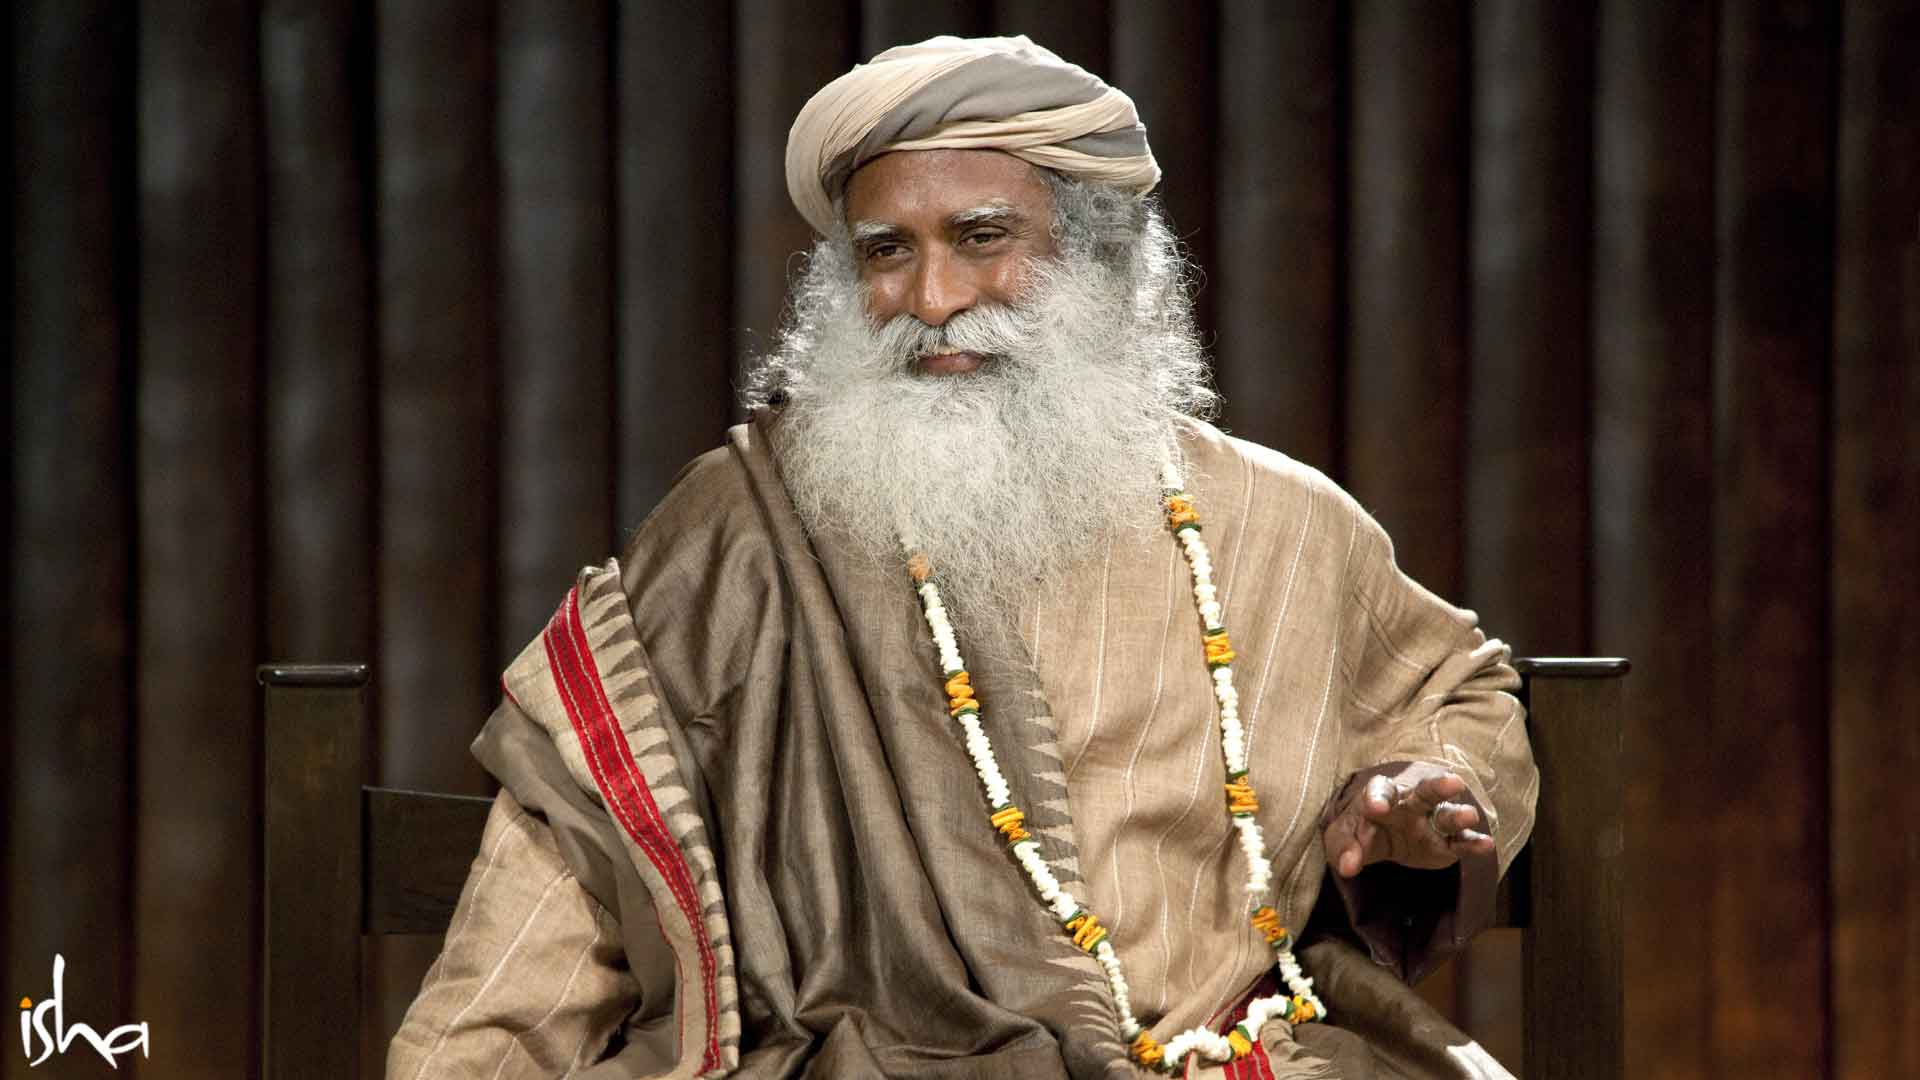 Sadhguru to Lead Yoga Session at UN on International Yoga Day